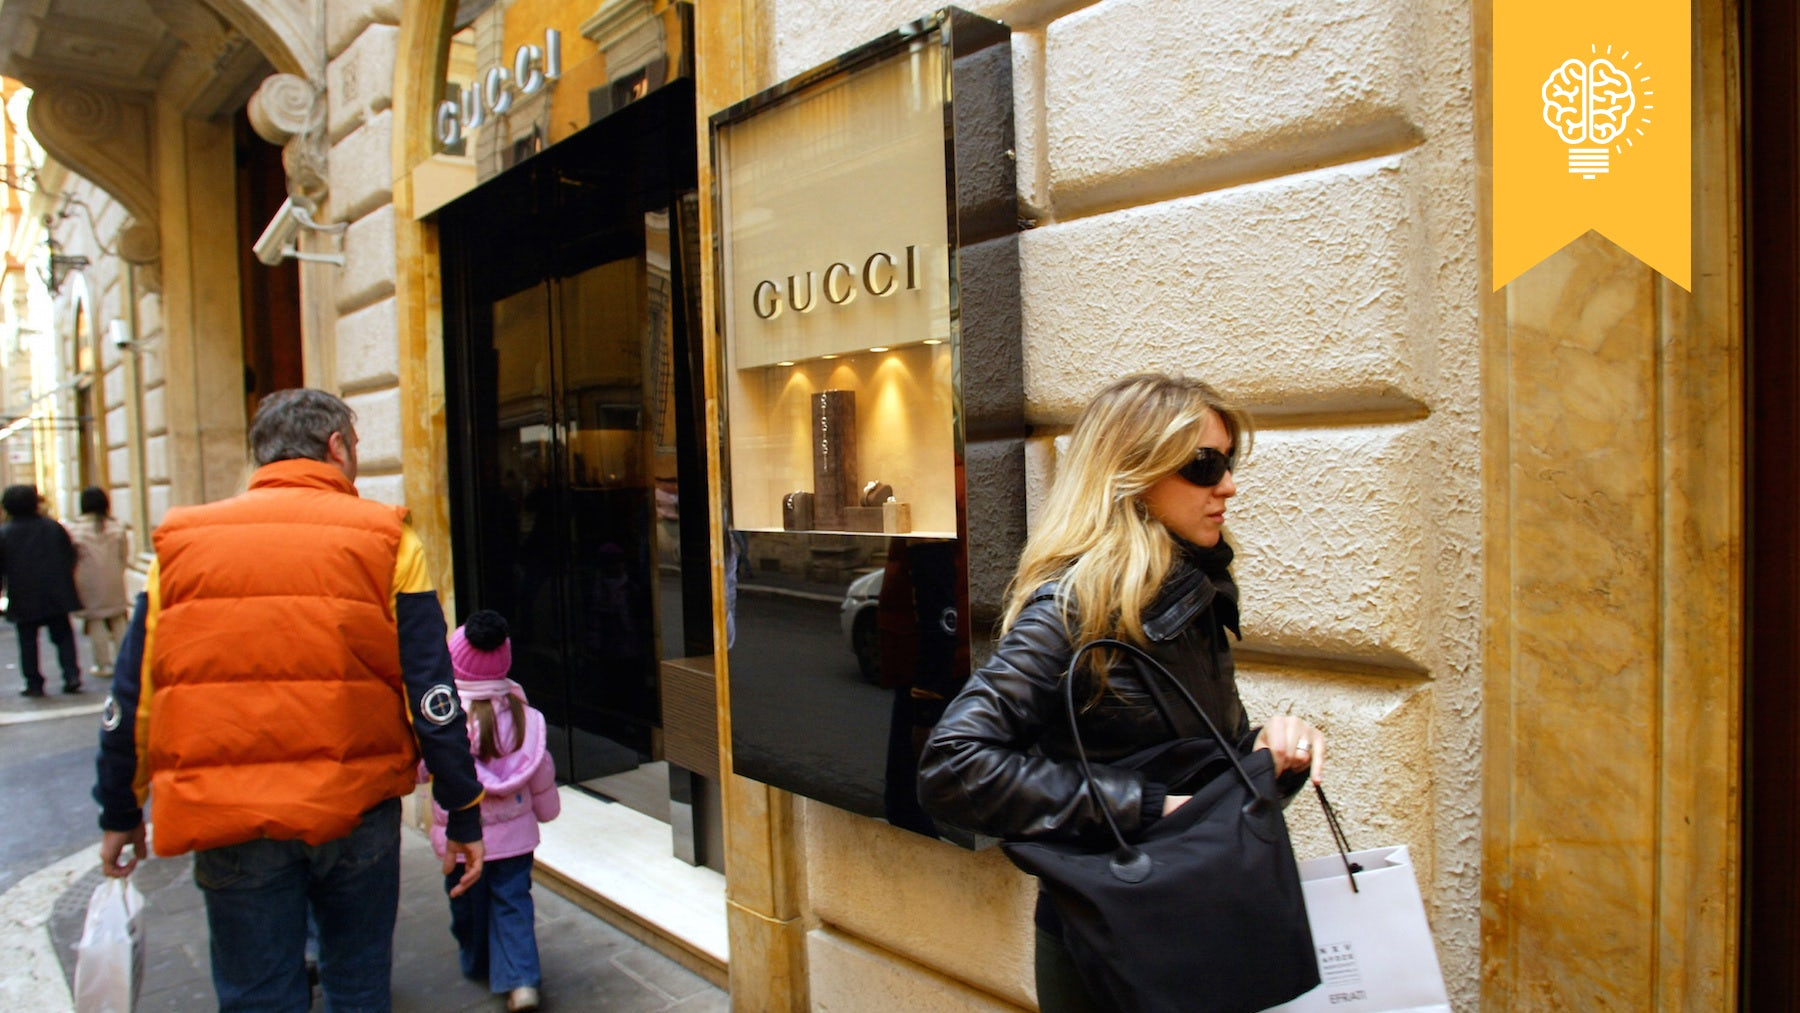 The Rich Don't Drive the Luxury Sector